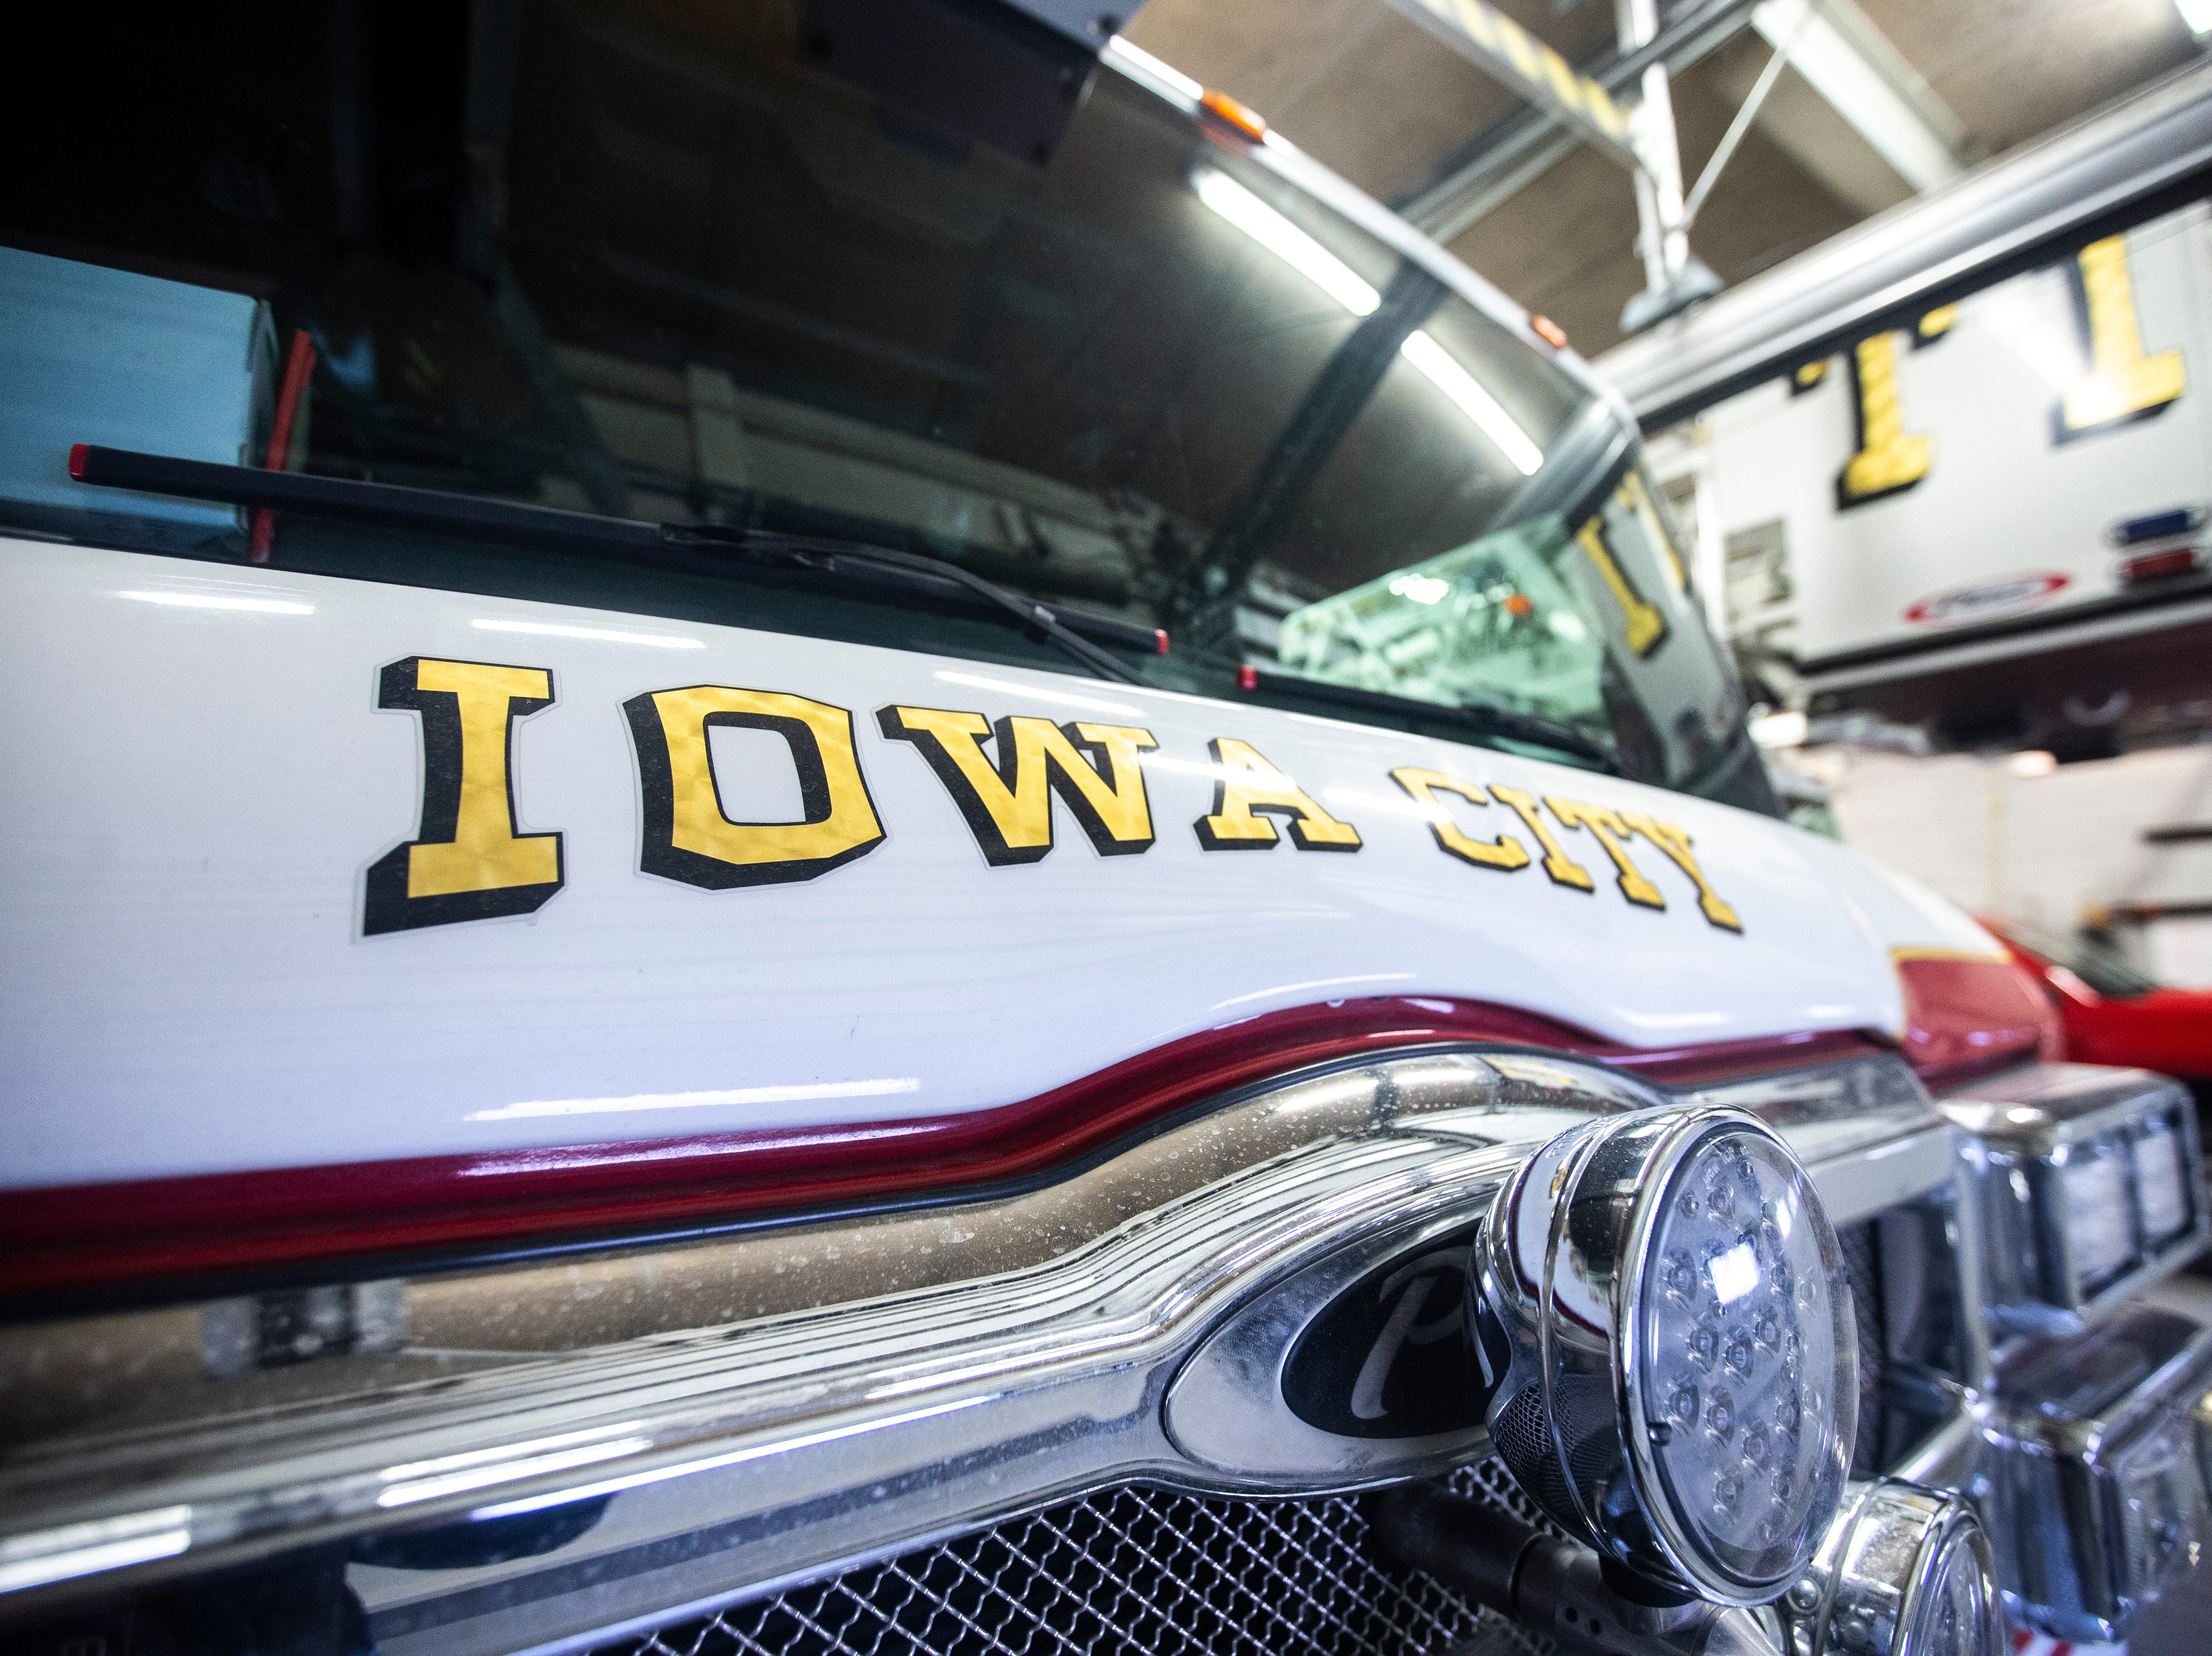 """Iowa City"" is written on the front of Emergency 1, the primary response vehicle used at the Iowa City Fire Deparment's central station, on Thursday, March 7, 2019, inside Fire Station No. 1, at 10 South Gilbert Street in downtown Iowa City, Iowa. The station was opened January 1, 1961, the same day the previous station of 80 years was retired."